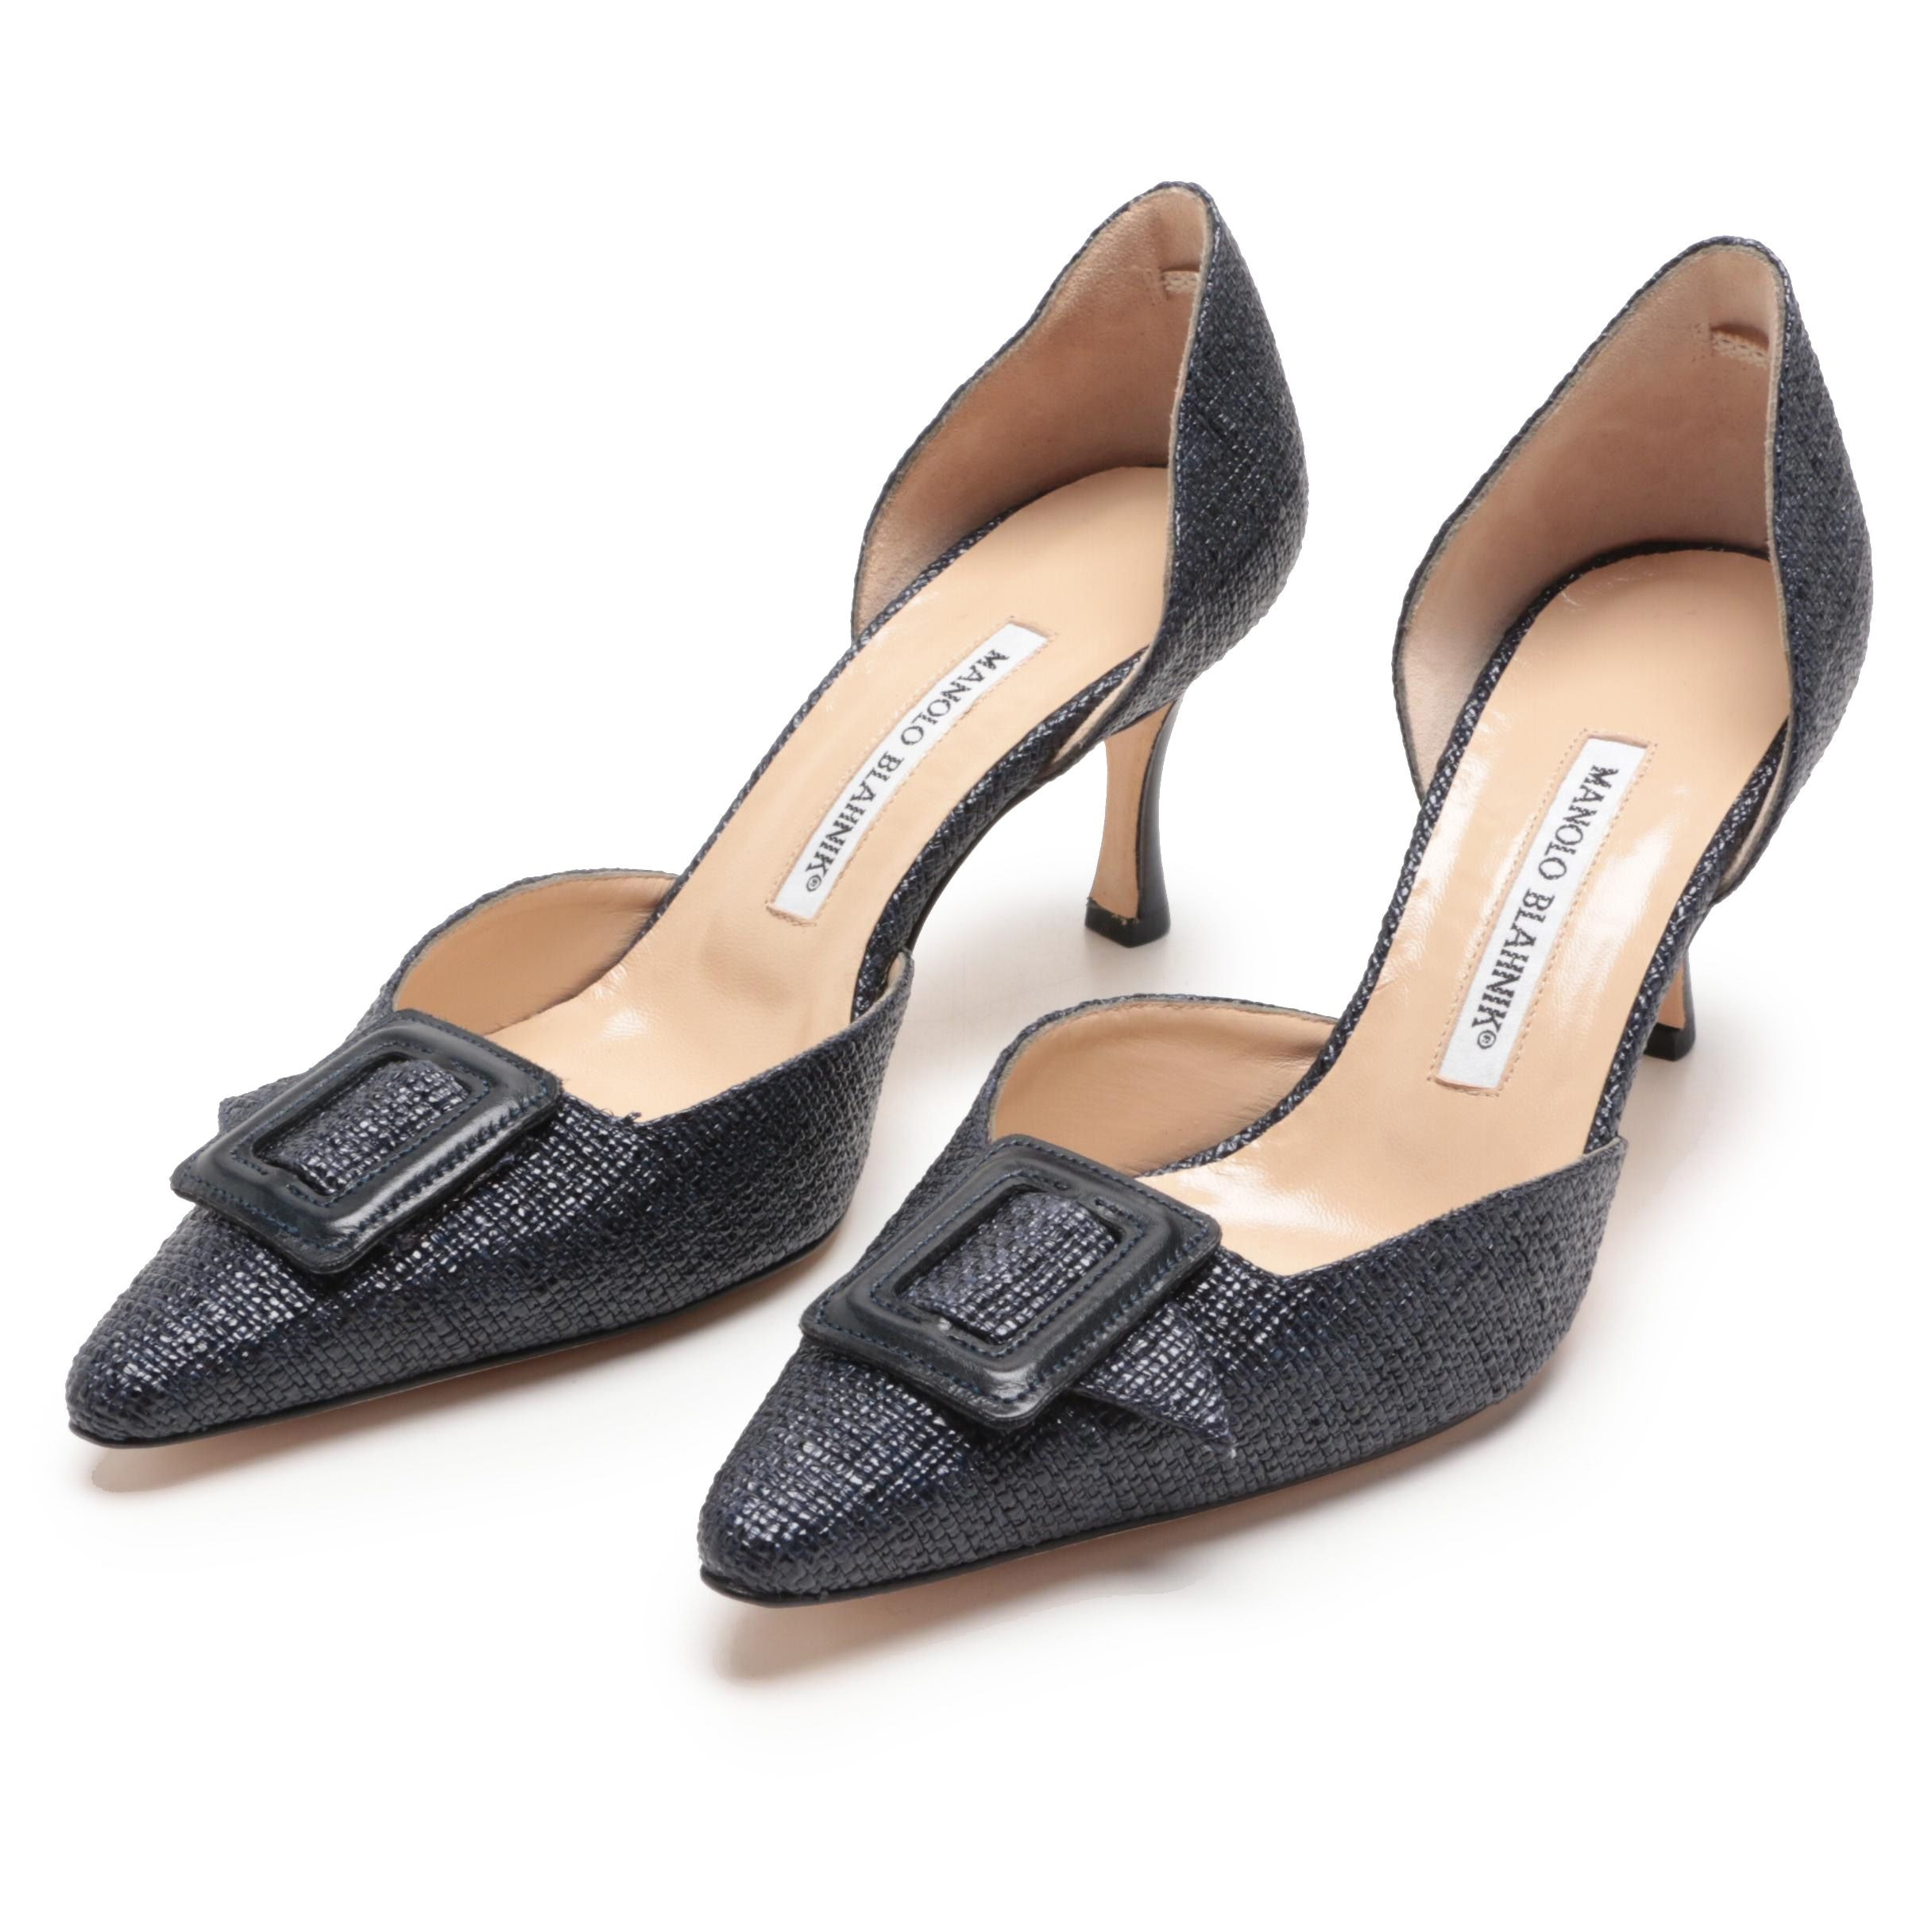 Manolo Blahnik Dark Blue Woven Raffia d'Orsay Pumps